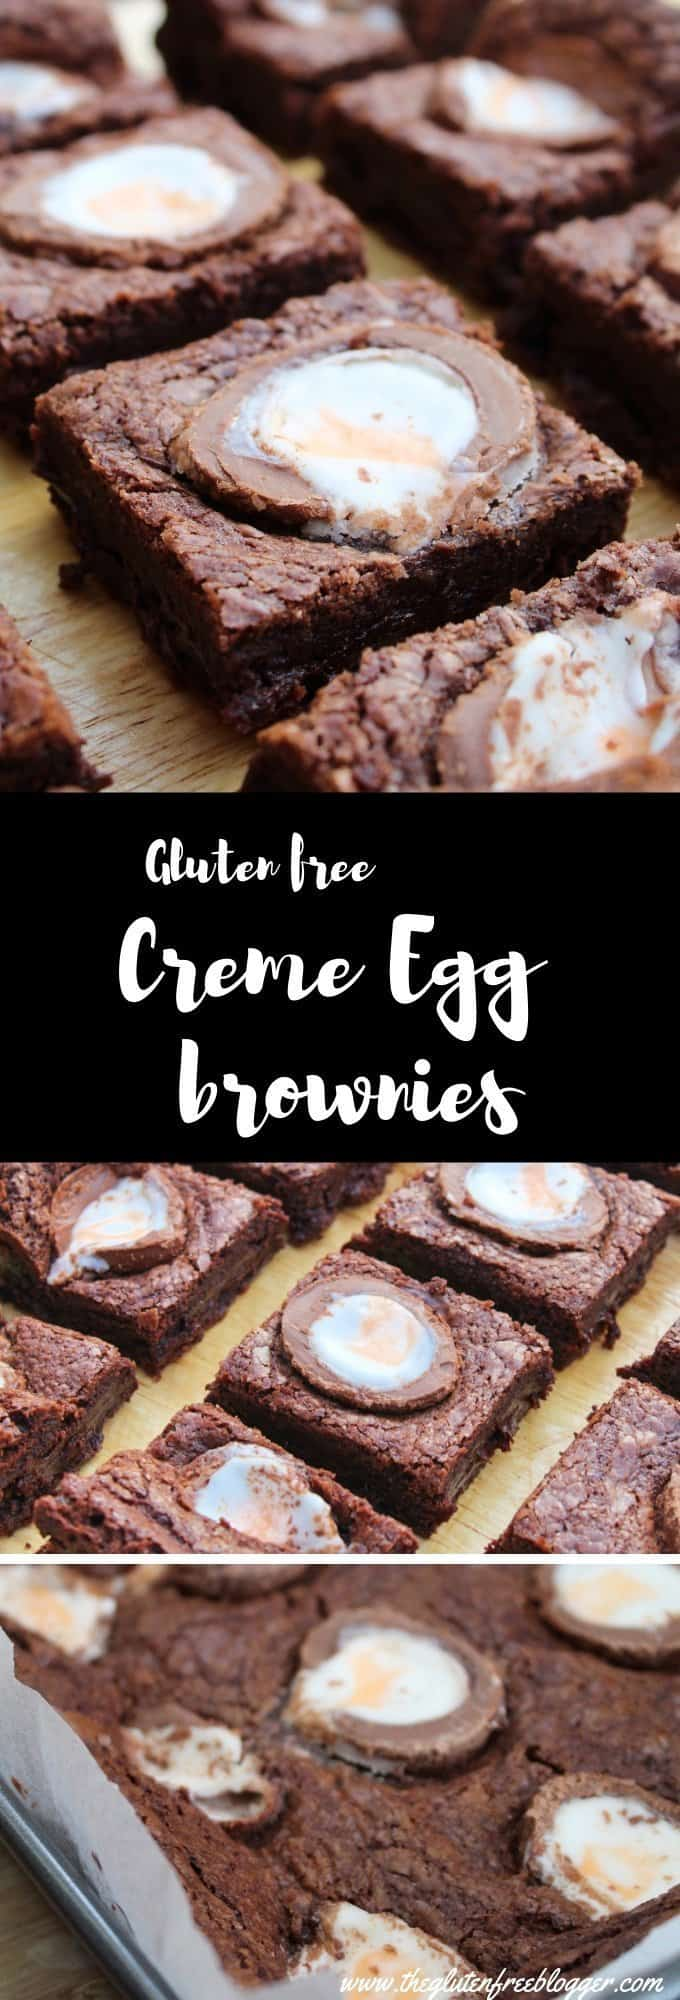 gluten free creme egg brownies recipe - desserts - coeliac - easy fudgy brownies